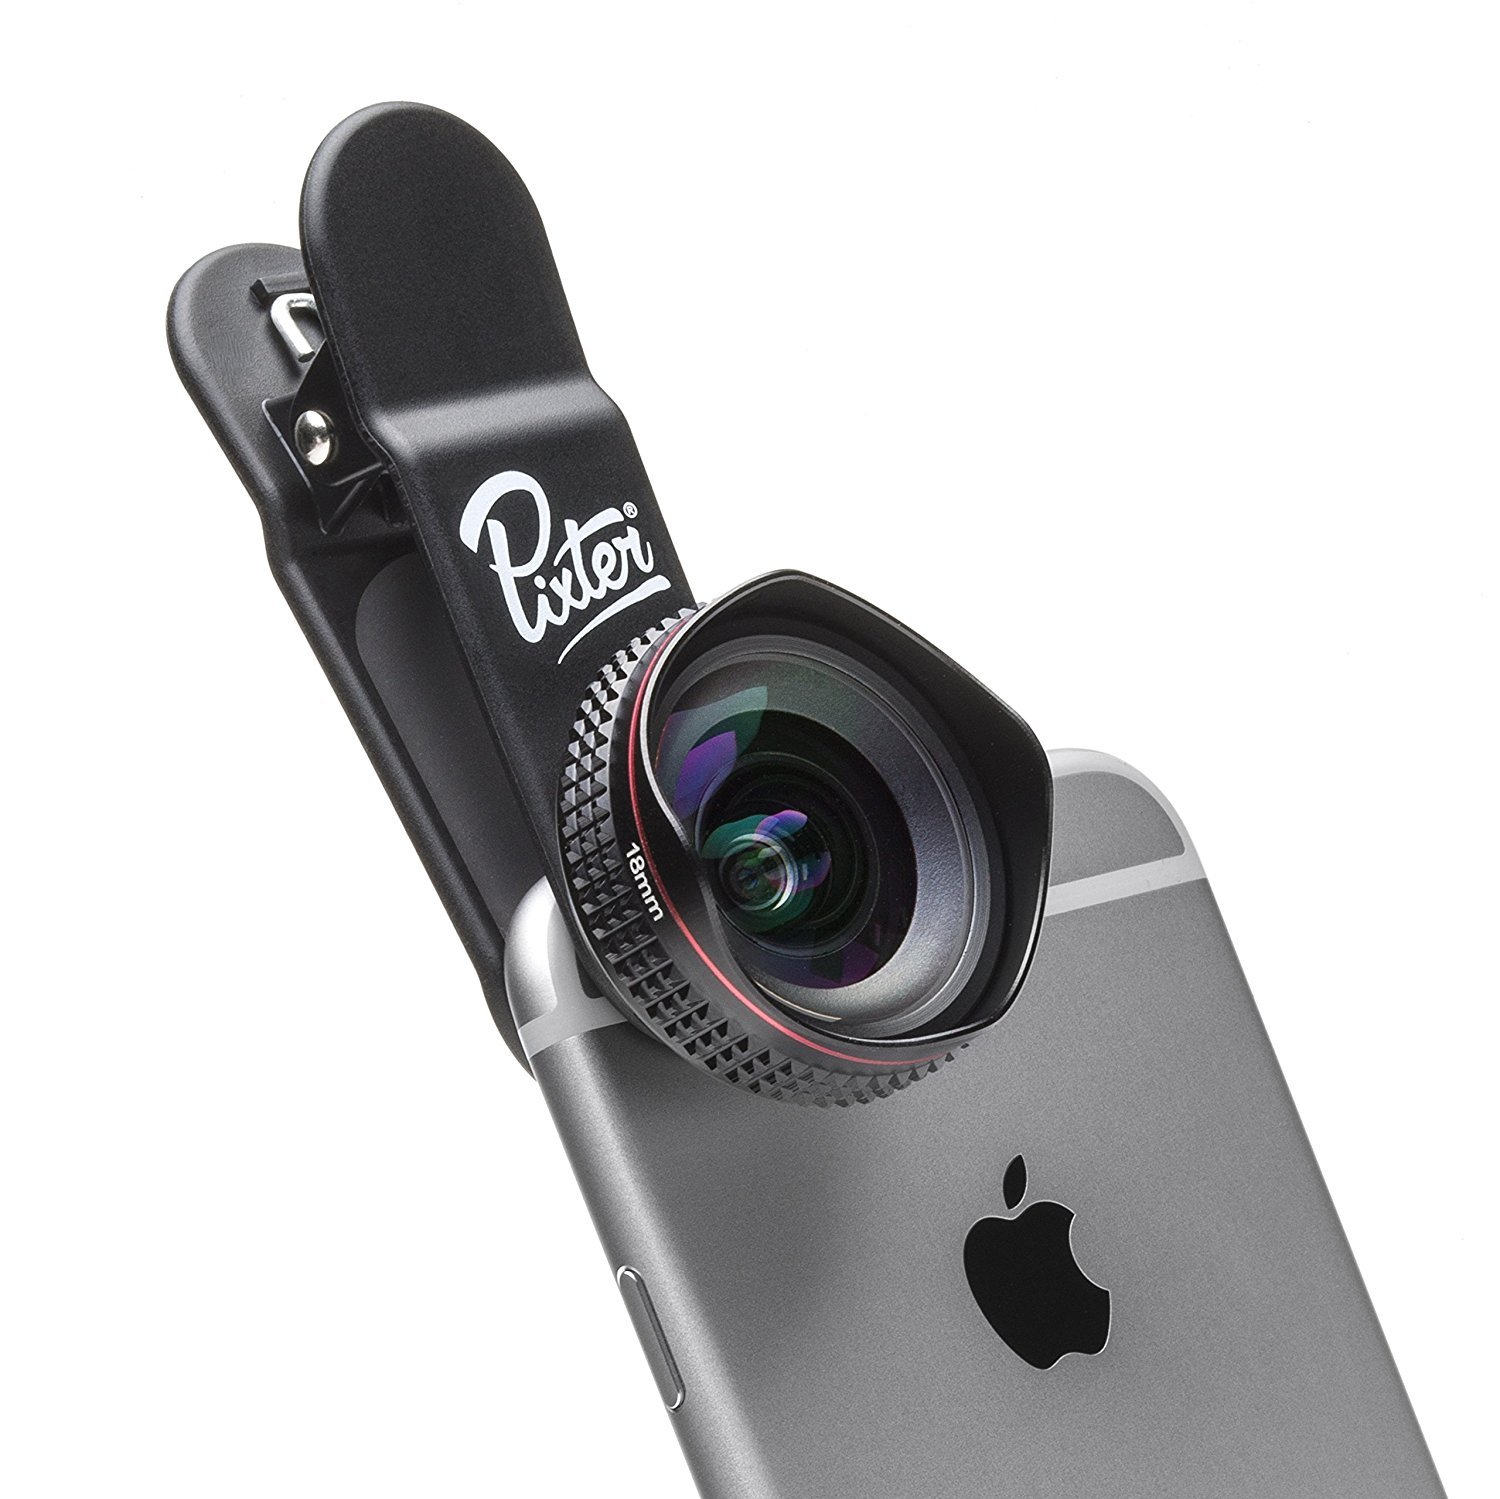 Pixter Wide Angle Pro Lens 0,5X, Compatible All Smartphones, Androïd and iOS: iPhone 5, 6, 6S, 7, 7 Plus, 8, 8 Plus, X/Samsung S6, S6 Edge, S7, S7 Edge, S8, S8 Plus, S9, S9 Plus/Huawei/Sony by Pixter